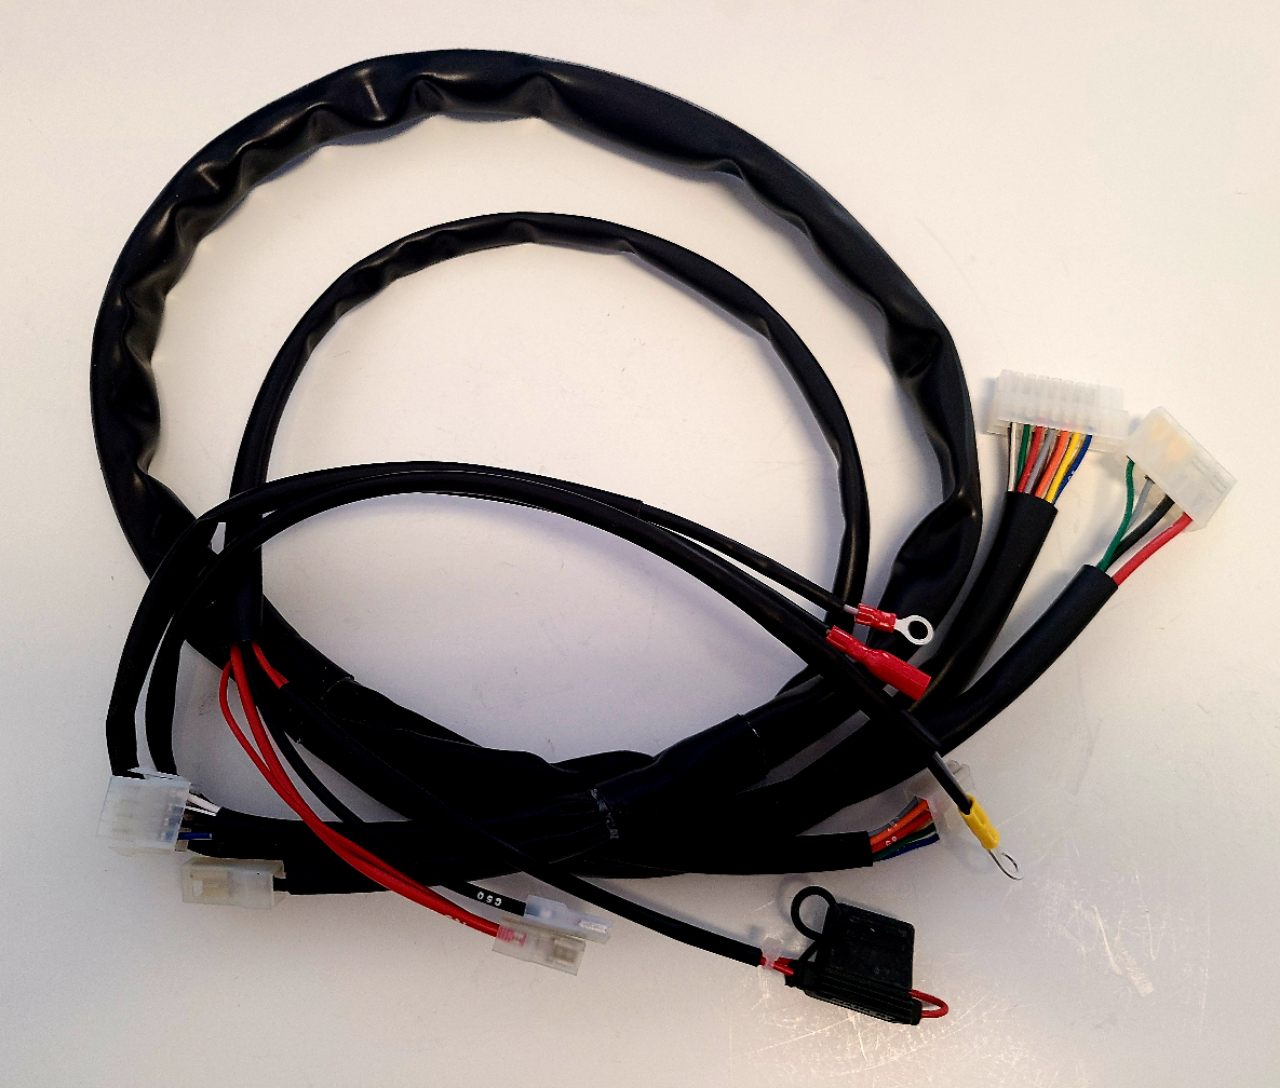 X30125935-C X30 Wiring Harness (for key ignition, white plug)